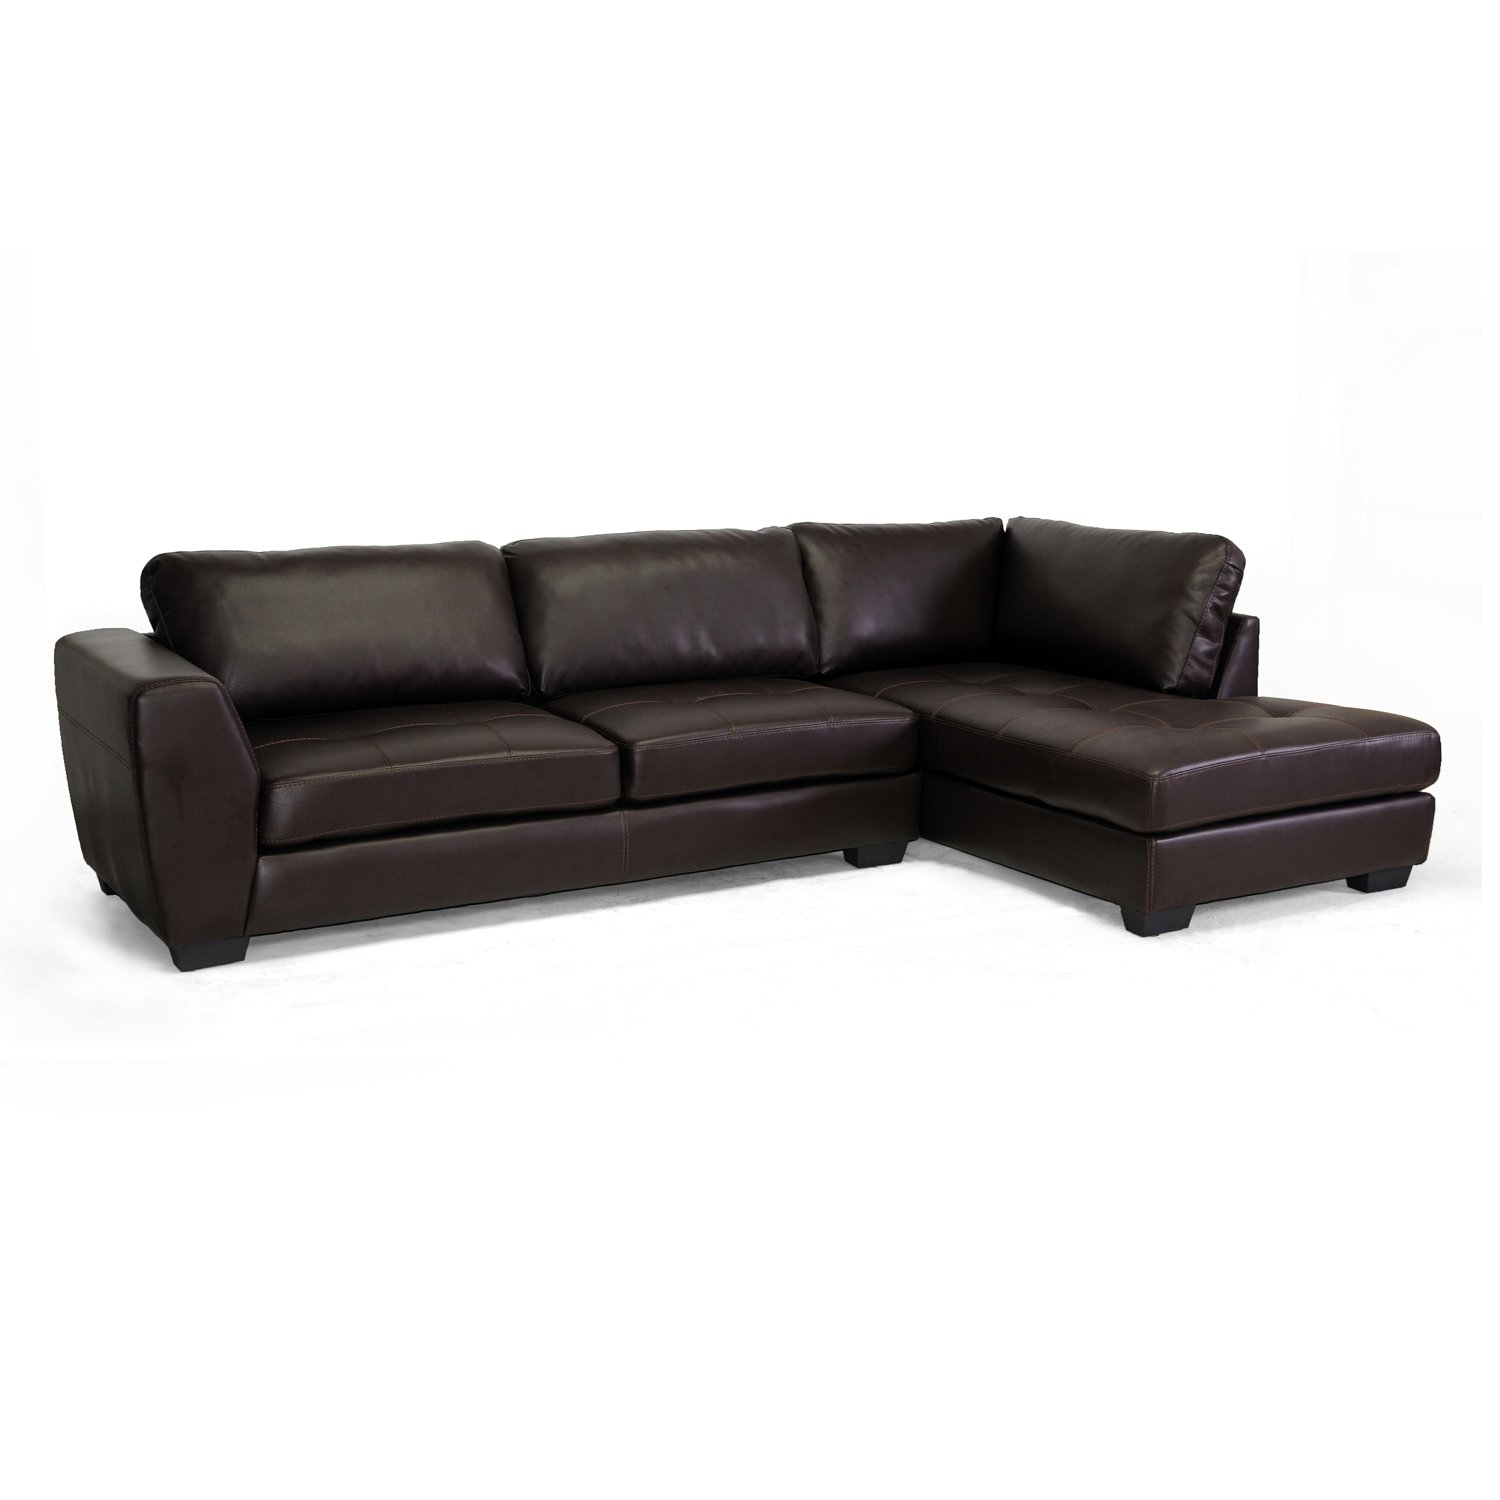 with sectional of natural taylor sofa products left chaise plush fabrics main choice linen modular